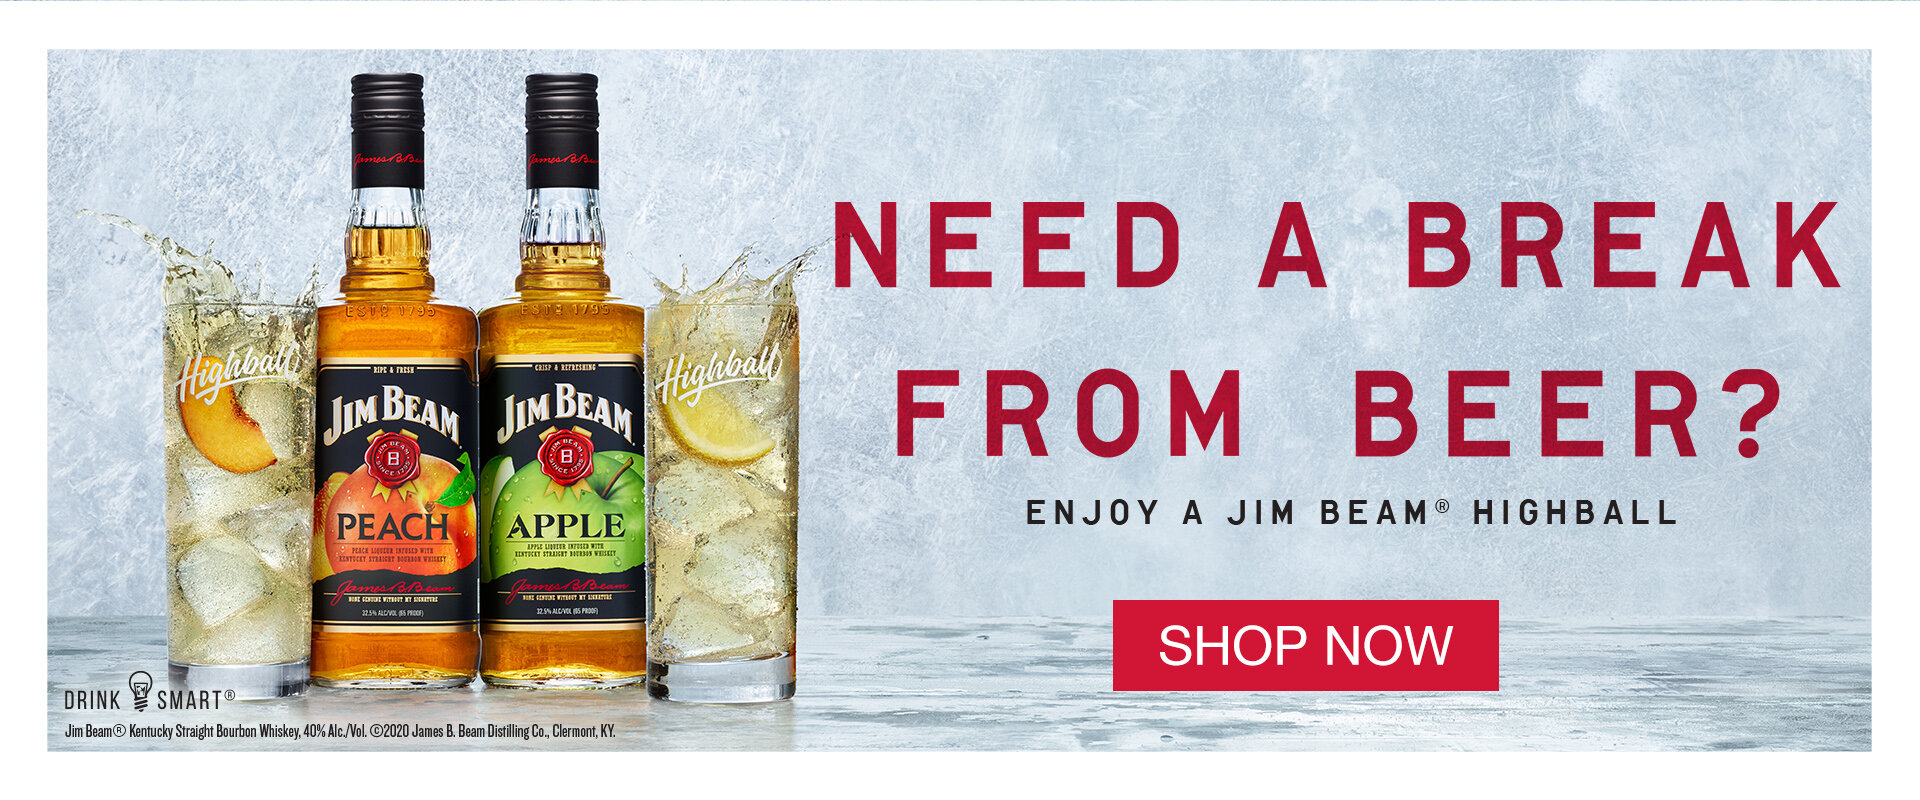 Need a break from beer? Enjoy a Jim Beam Peach or Apple highball. Shop now.